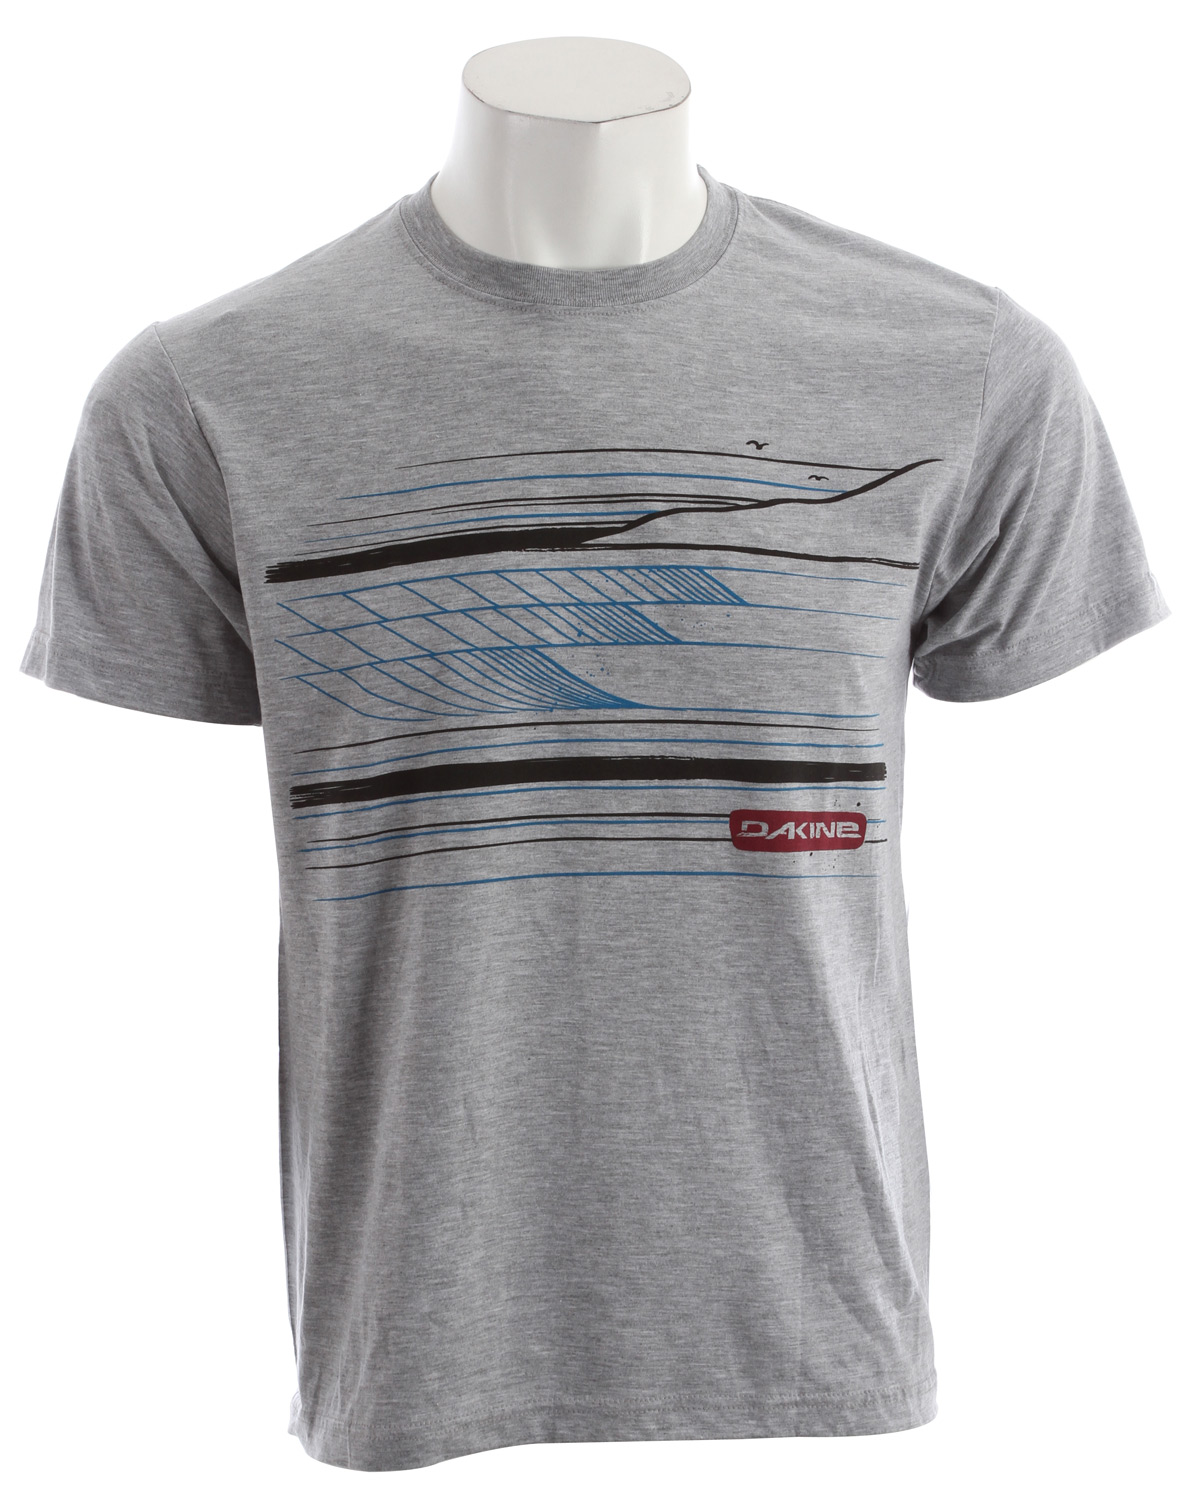 Surf Drirelease high performance T-shirt designed for surfing - $17.95